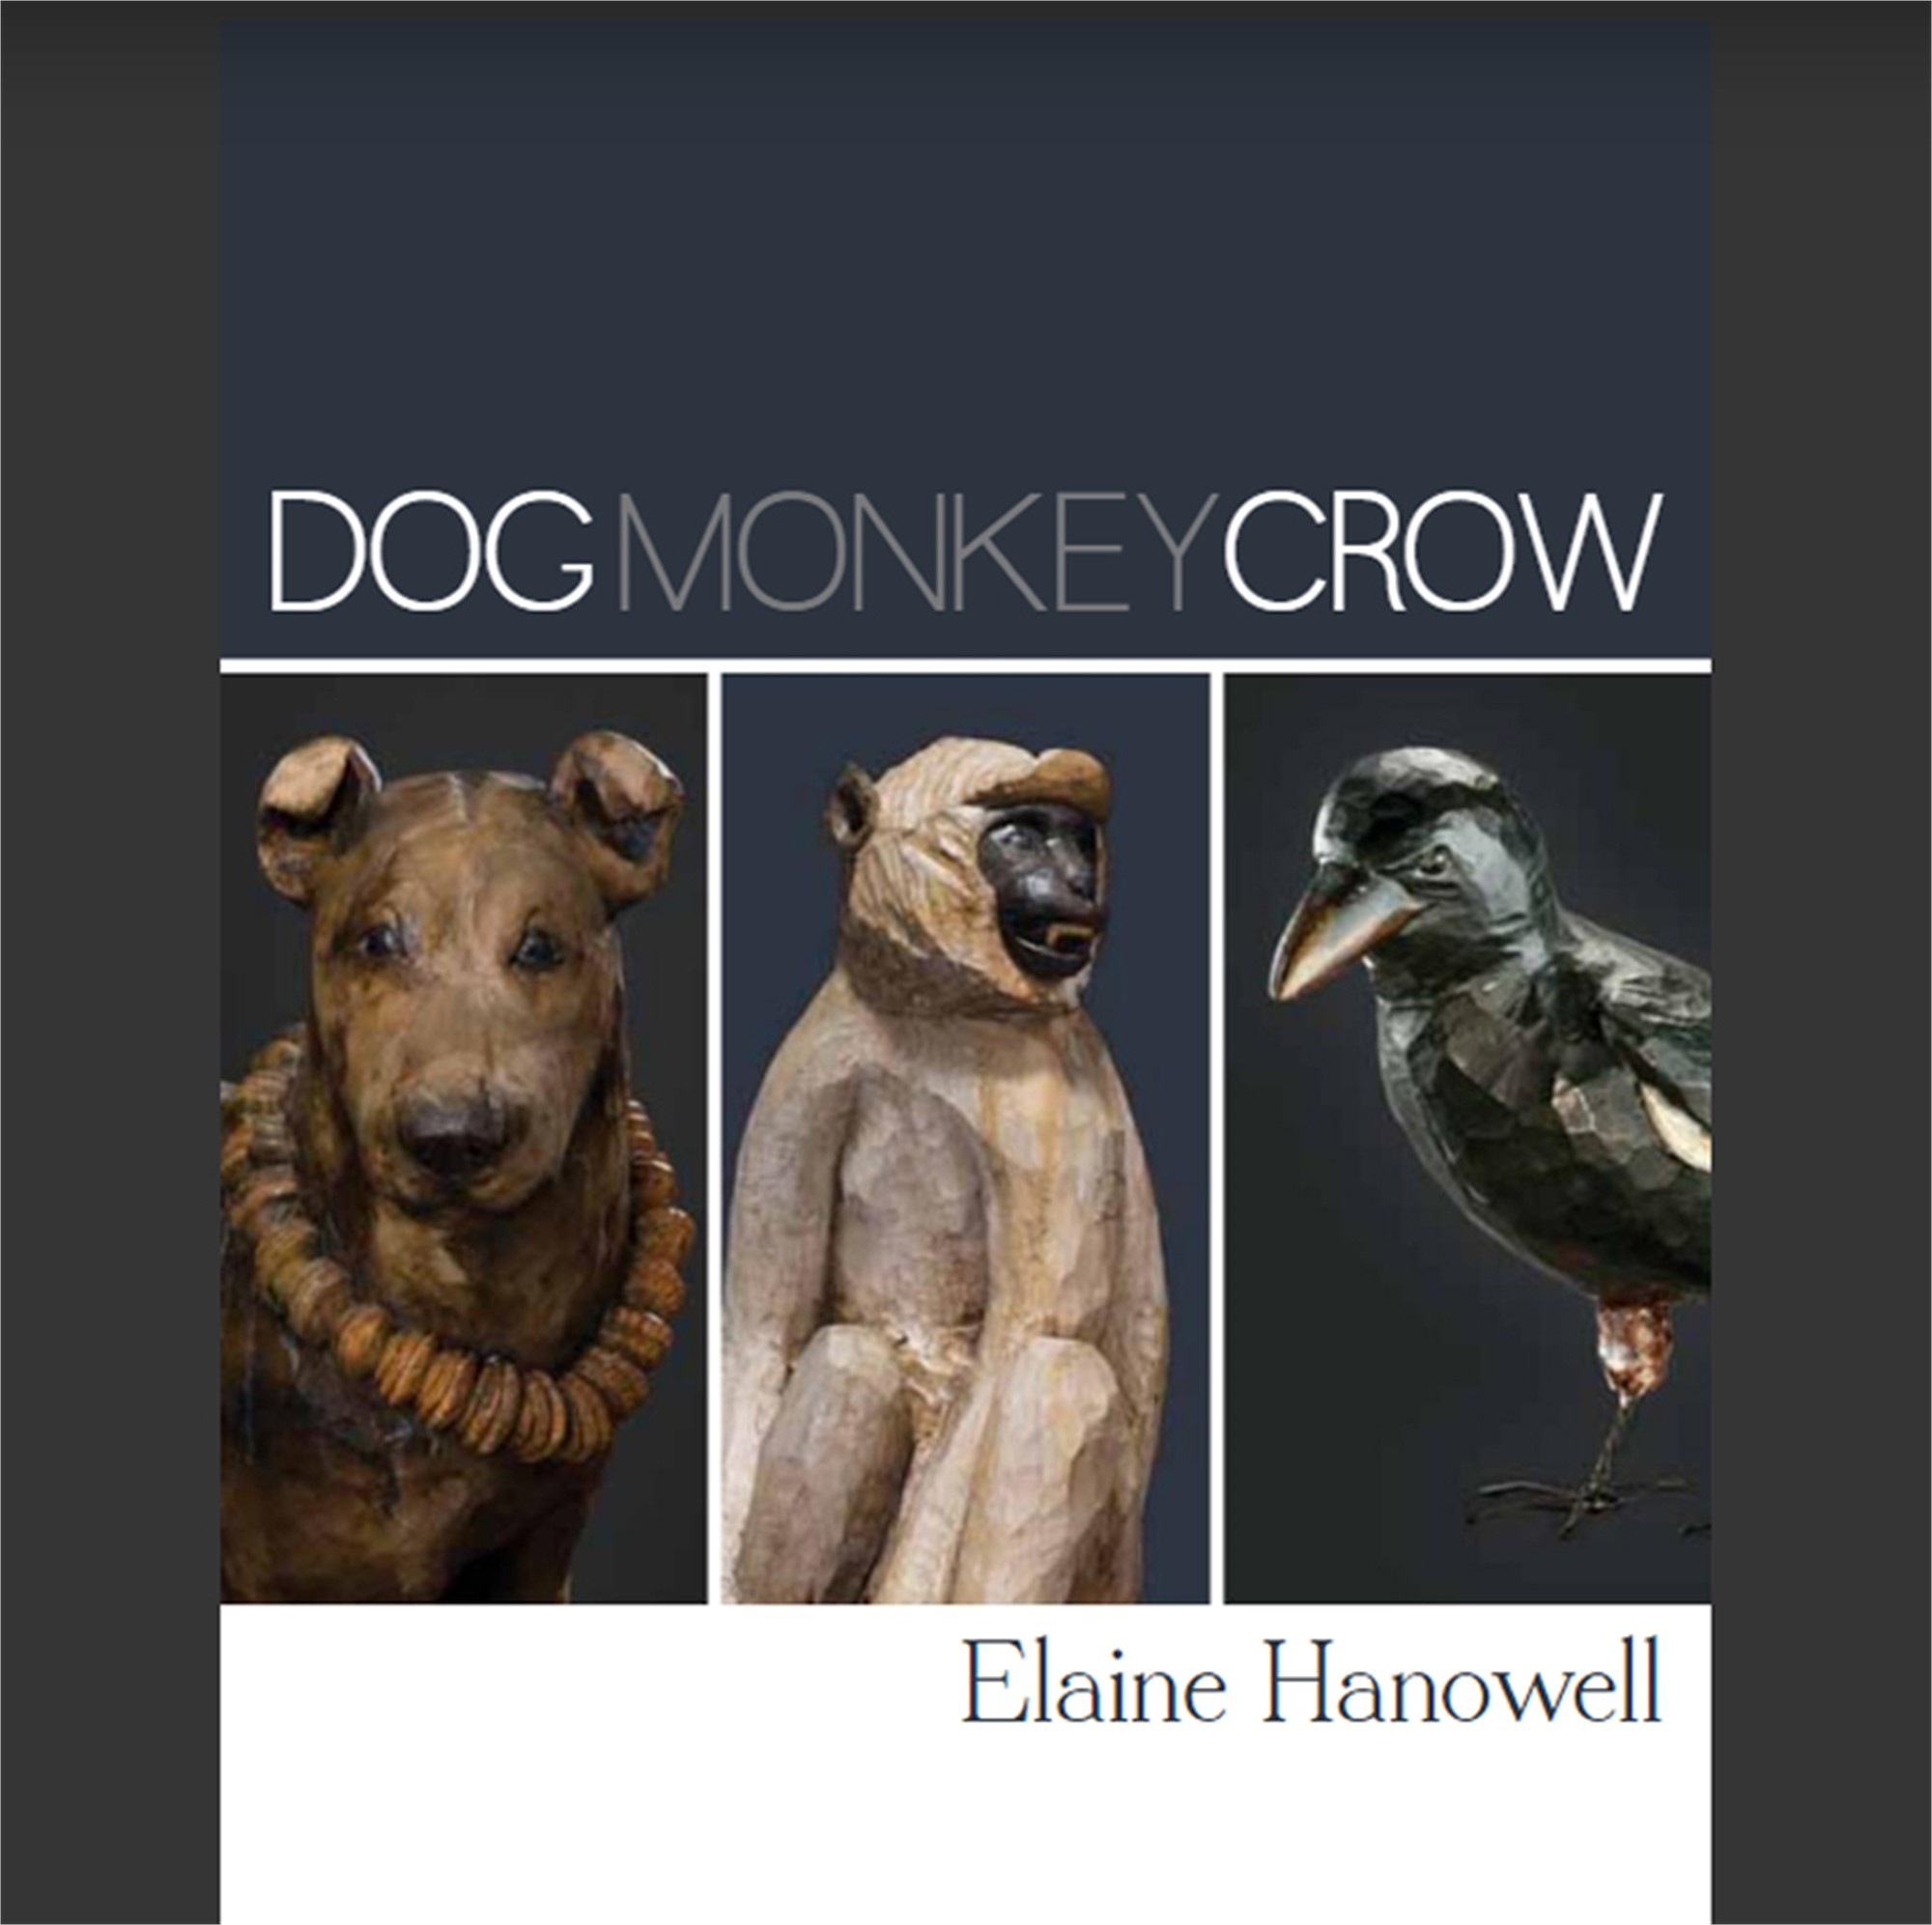 Dog, Monkey, Crow | Exhibition Catalog by Elaine Hanowell